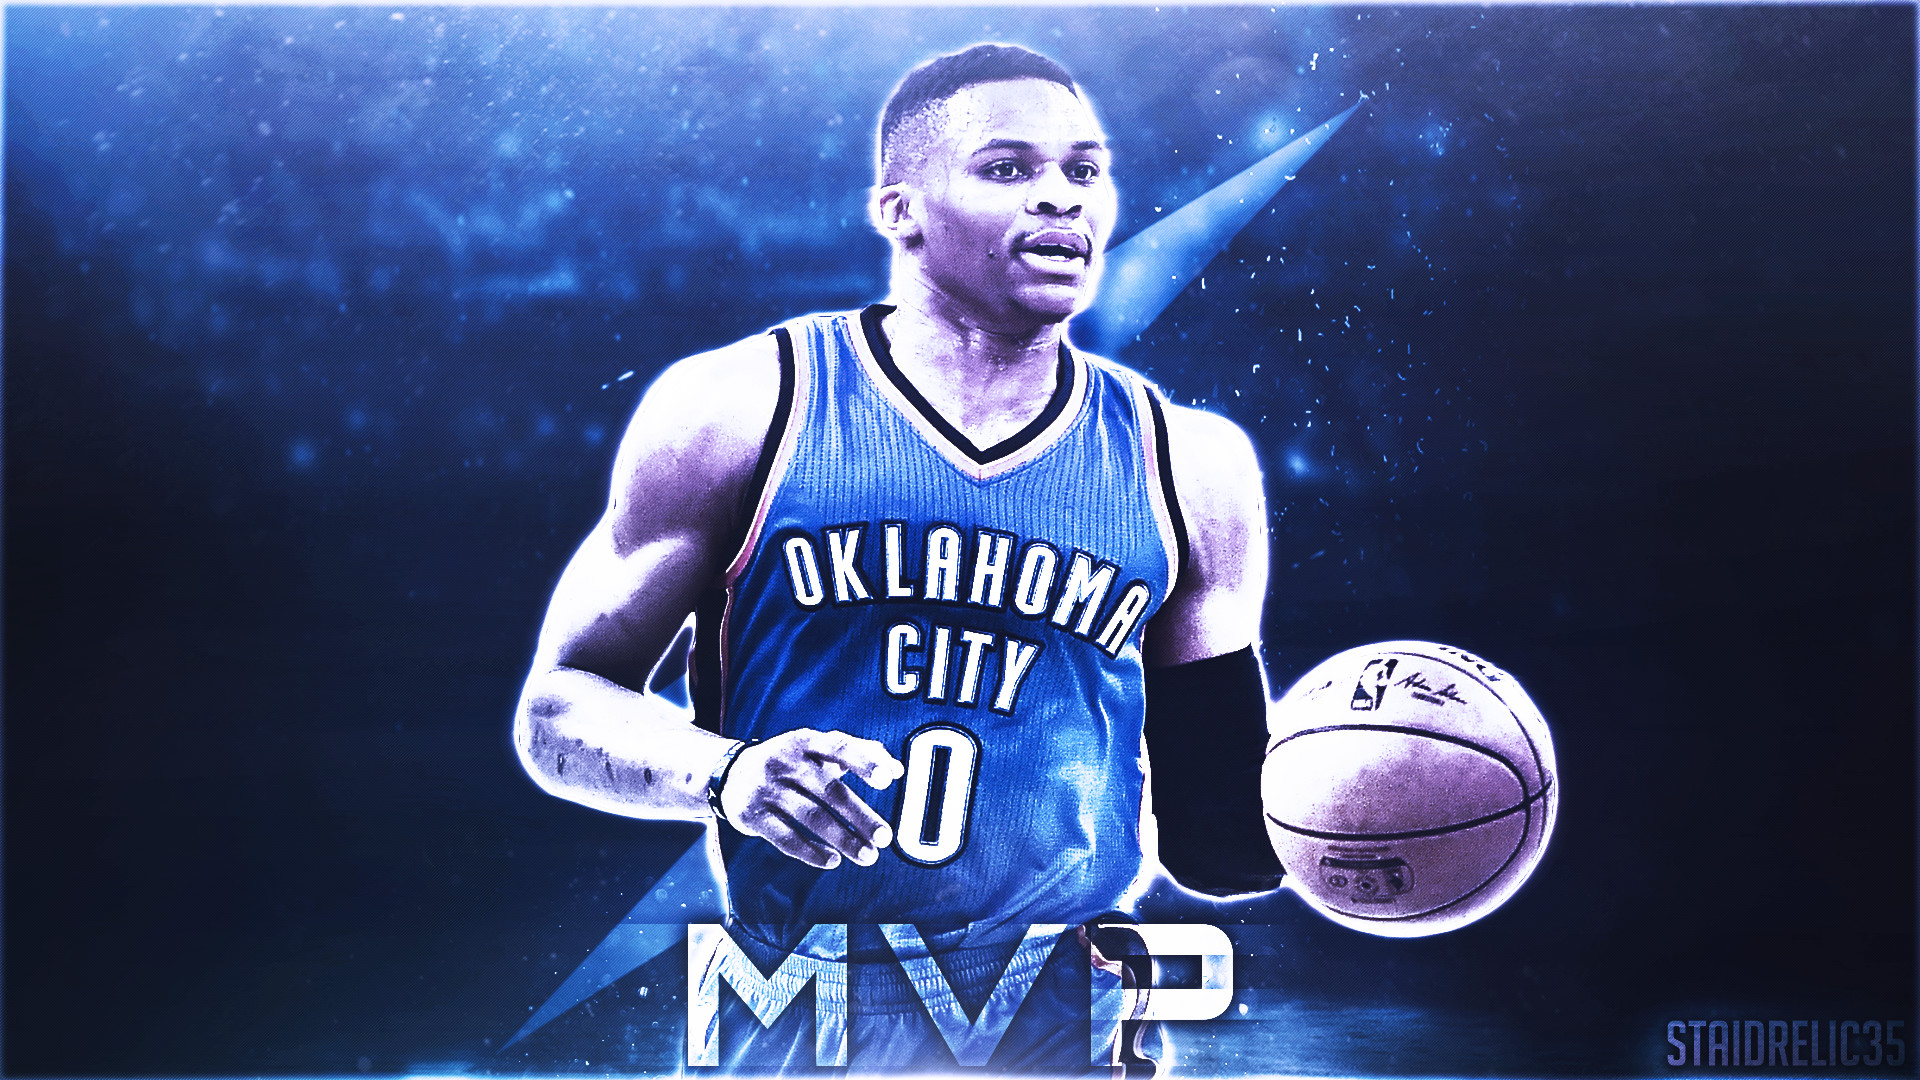 """Simple Russell Westbrook """"MVP"""" design I created. What do you guys think?"""